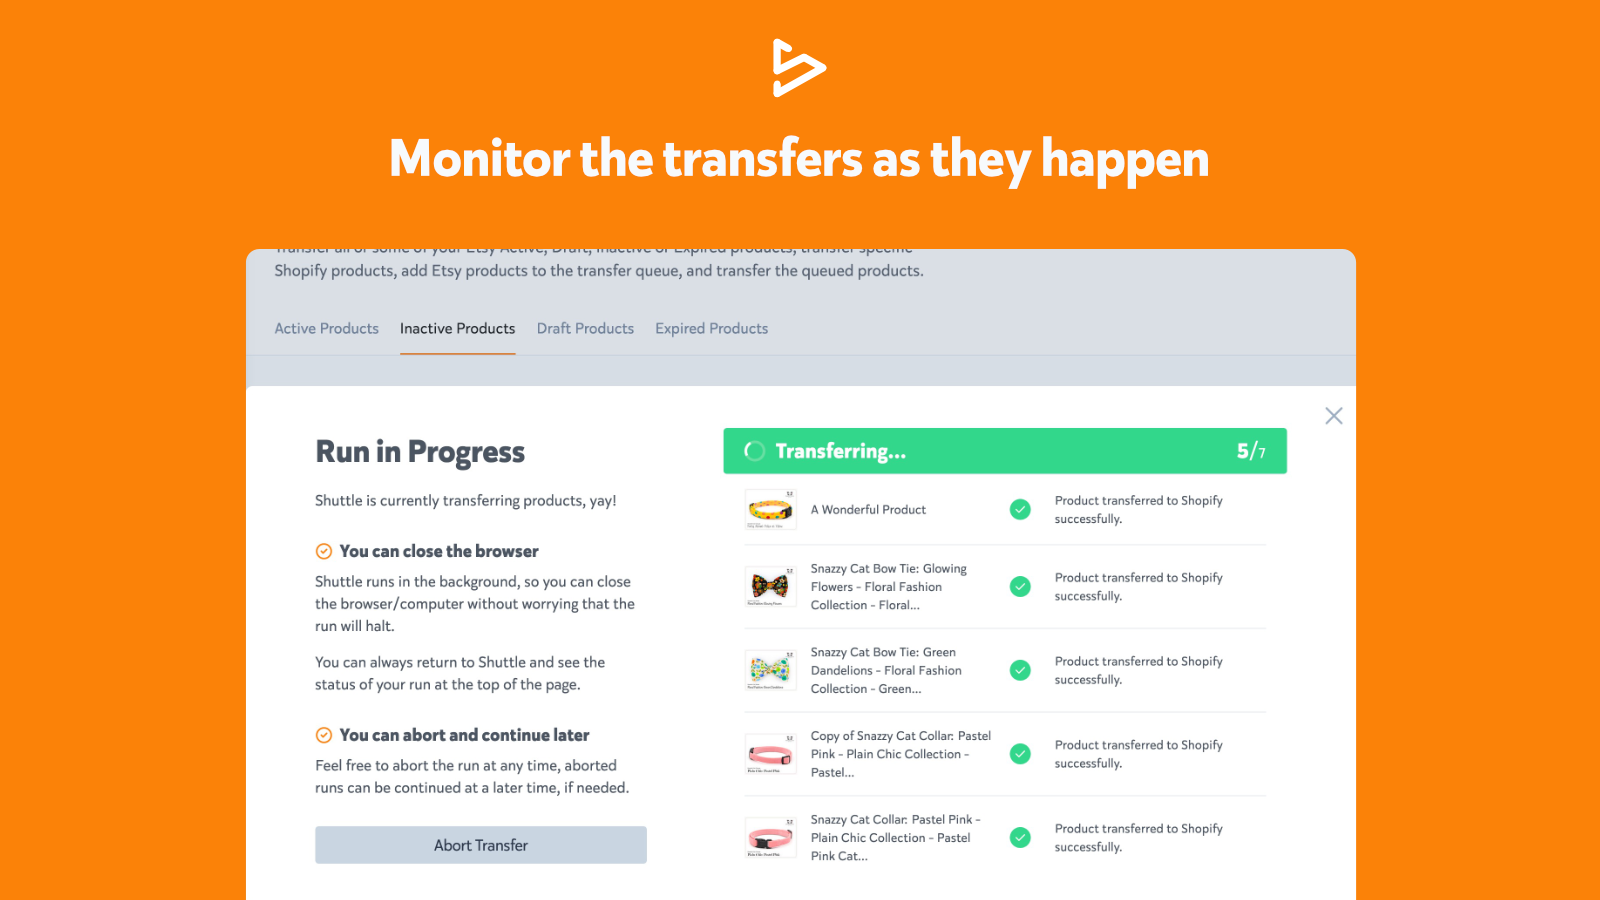 Monitor transfers as they happen